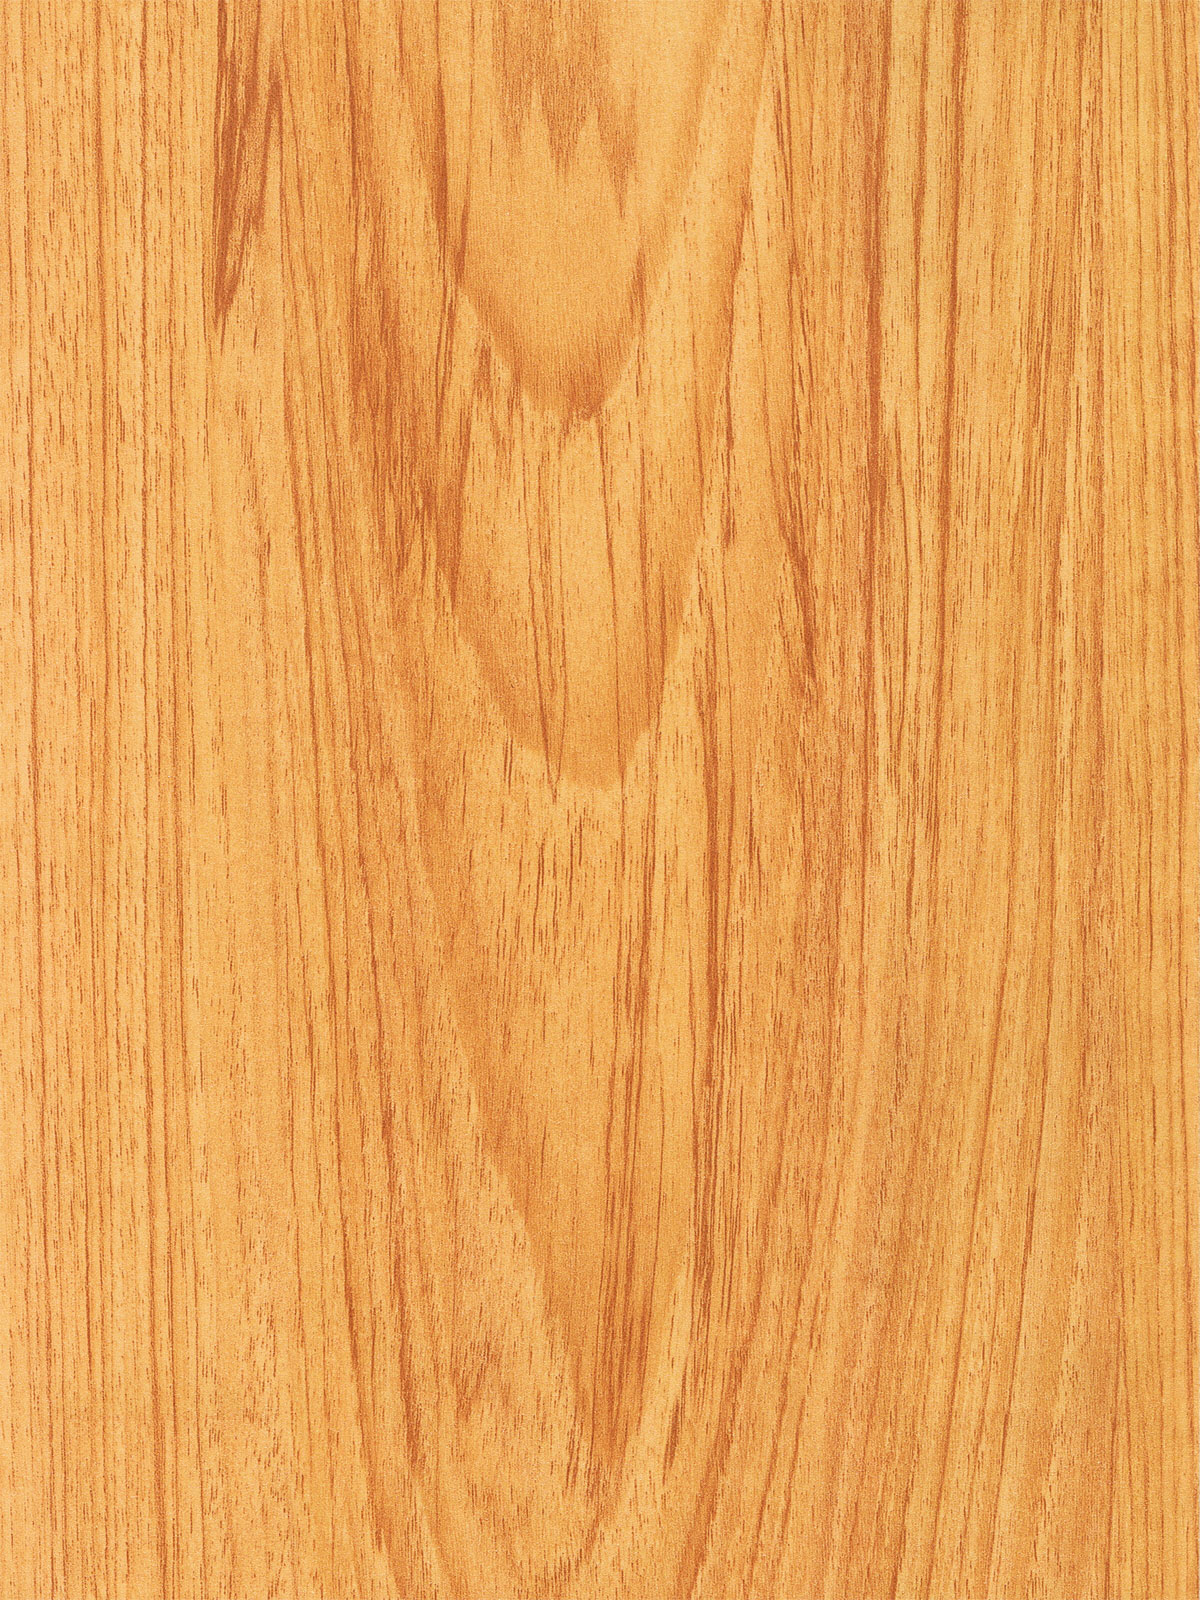 Laminate flooring colors shaw laminate flooring 5 colors for Laminate flooring colors